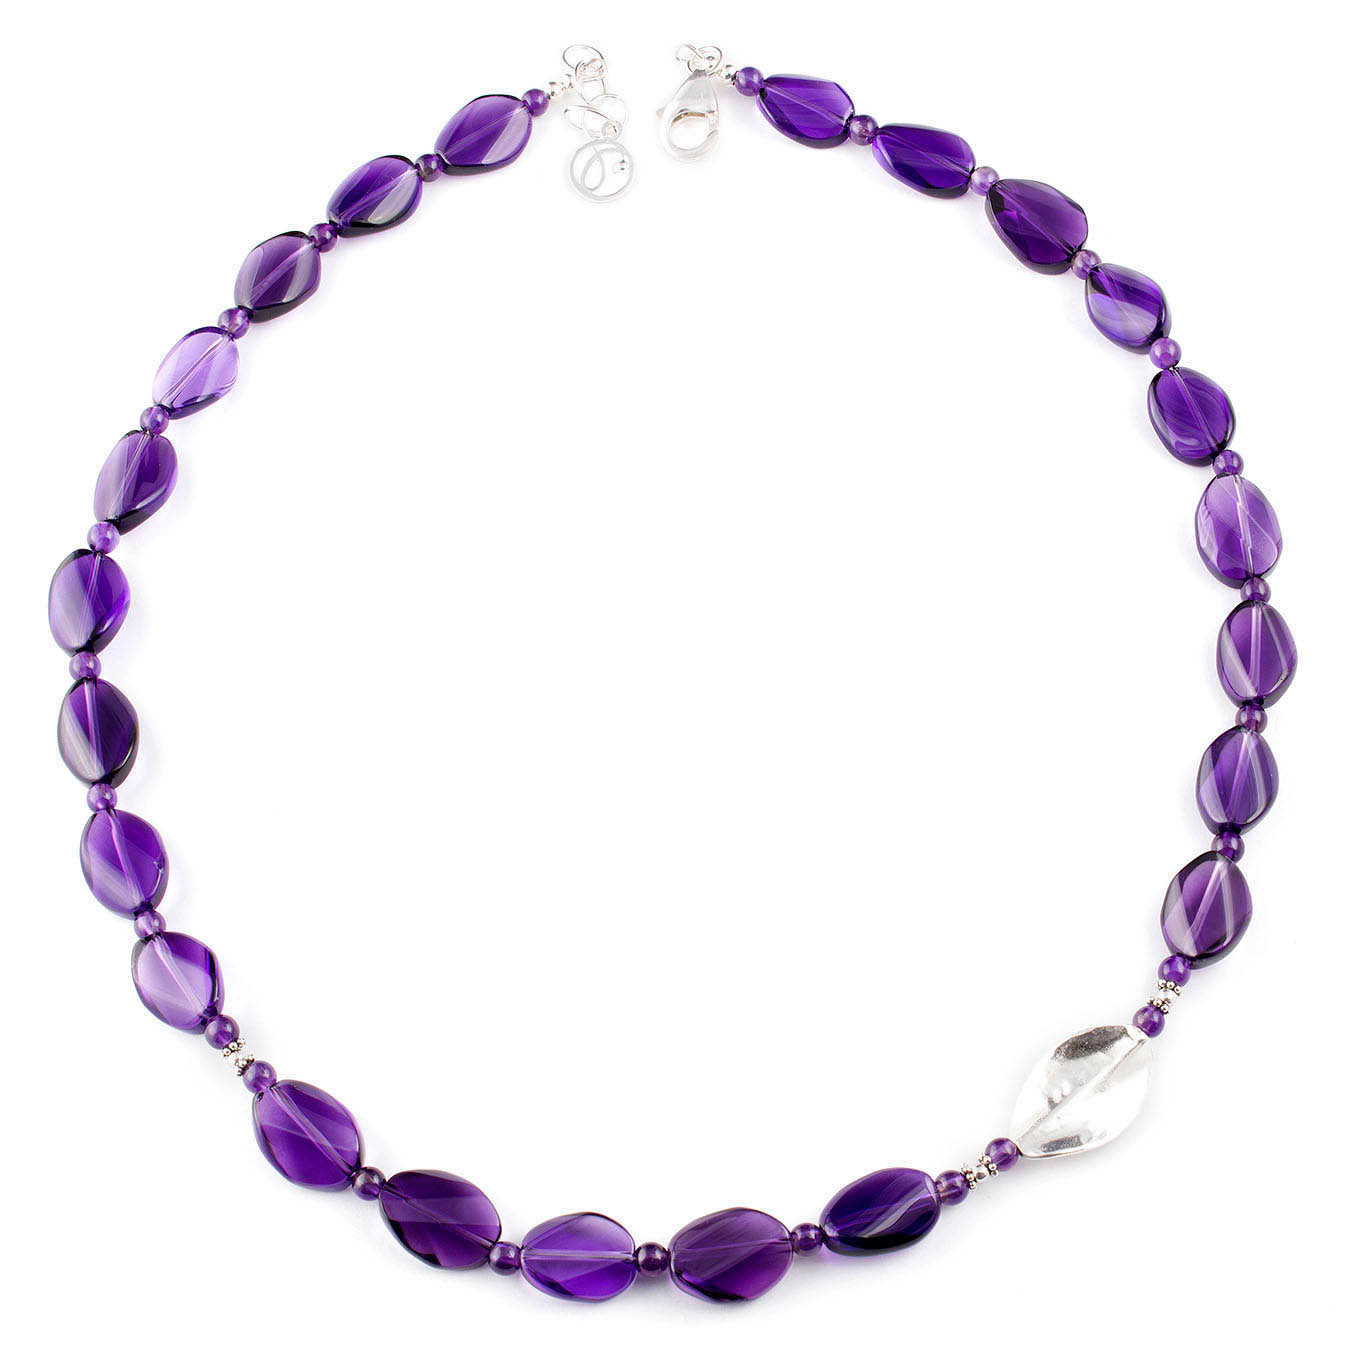 Amethyst and thai silver beaded jewelry birthstone necklace set